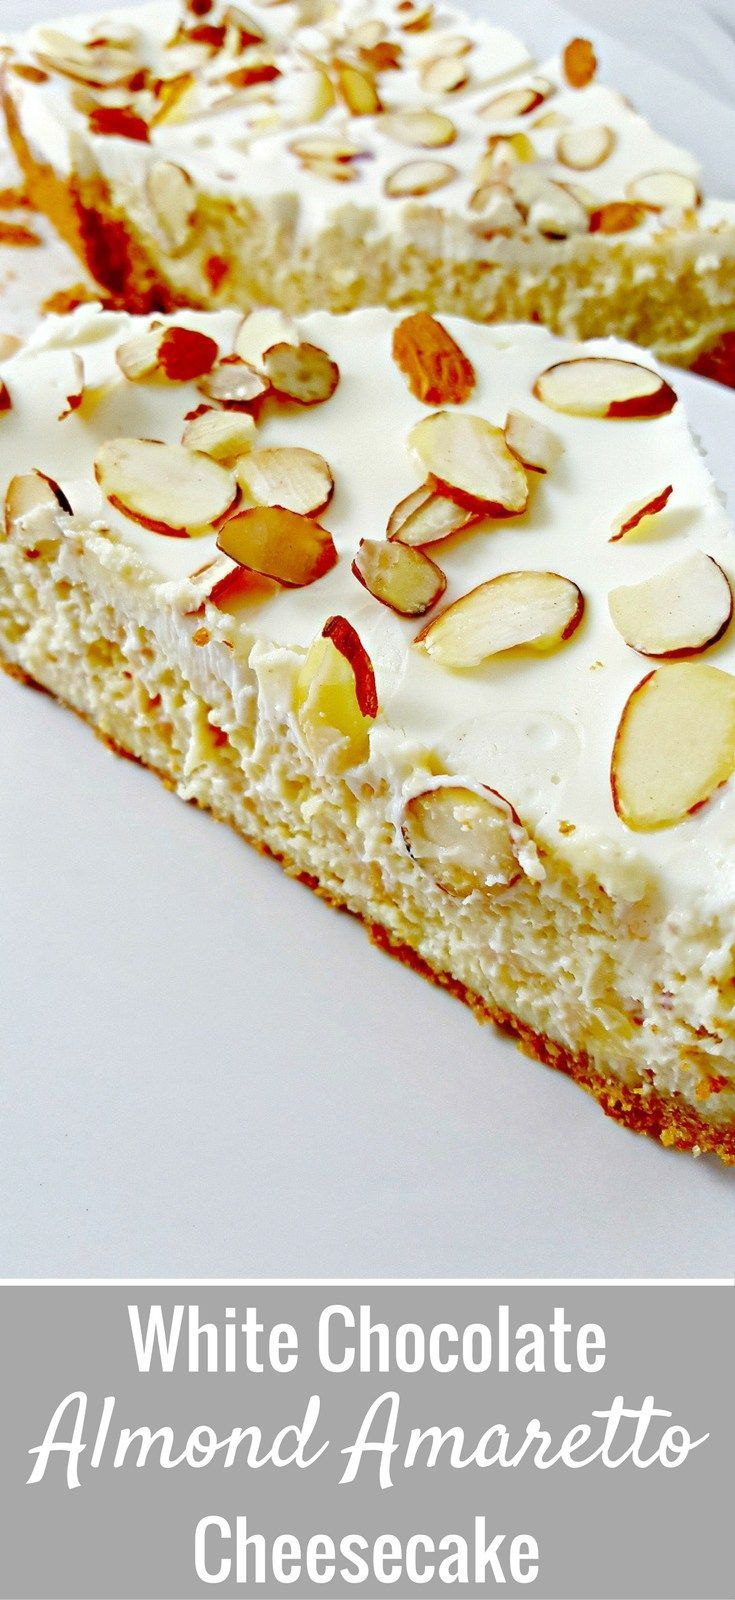 This elegant White Chocolate Almond Amaretto Cheesecake is gorgeous AND delicious! It starts with a homemade graham and almond crust. Then it's filled with a creamy dense cheesecake flavored with white chocolate, almond, and Amaretto. And finally, it is c